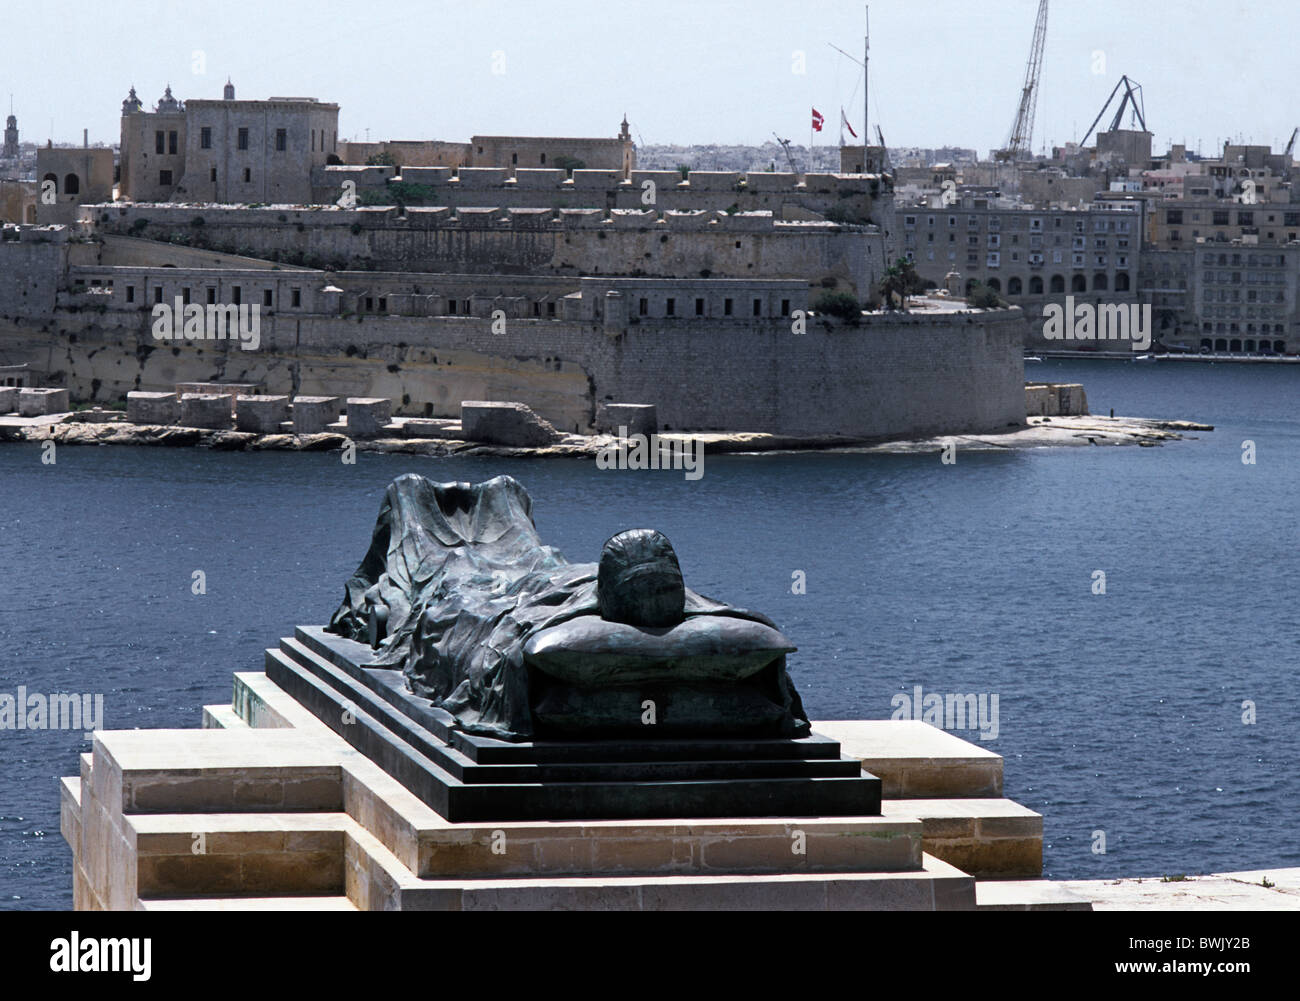 Malta. WW2 Memorial to those who died during the siege of Malta above Valetta Harbour.  0 - Stock Image